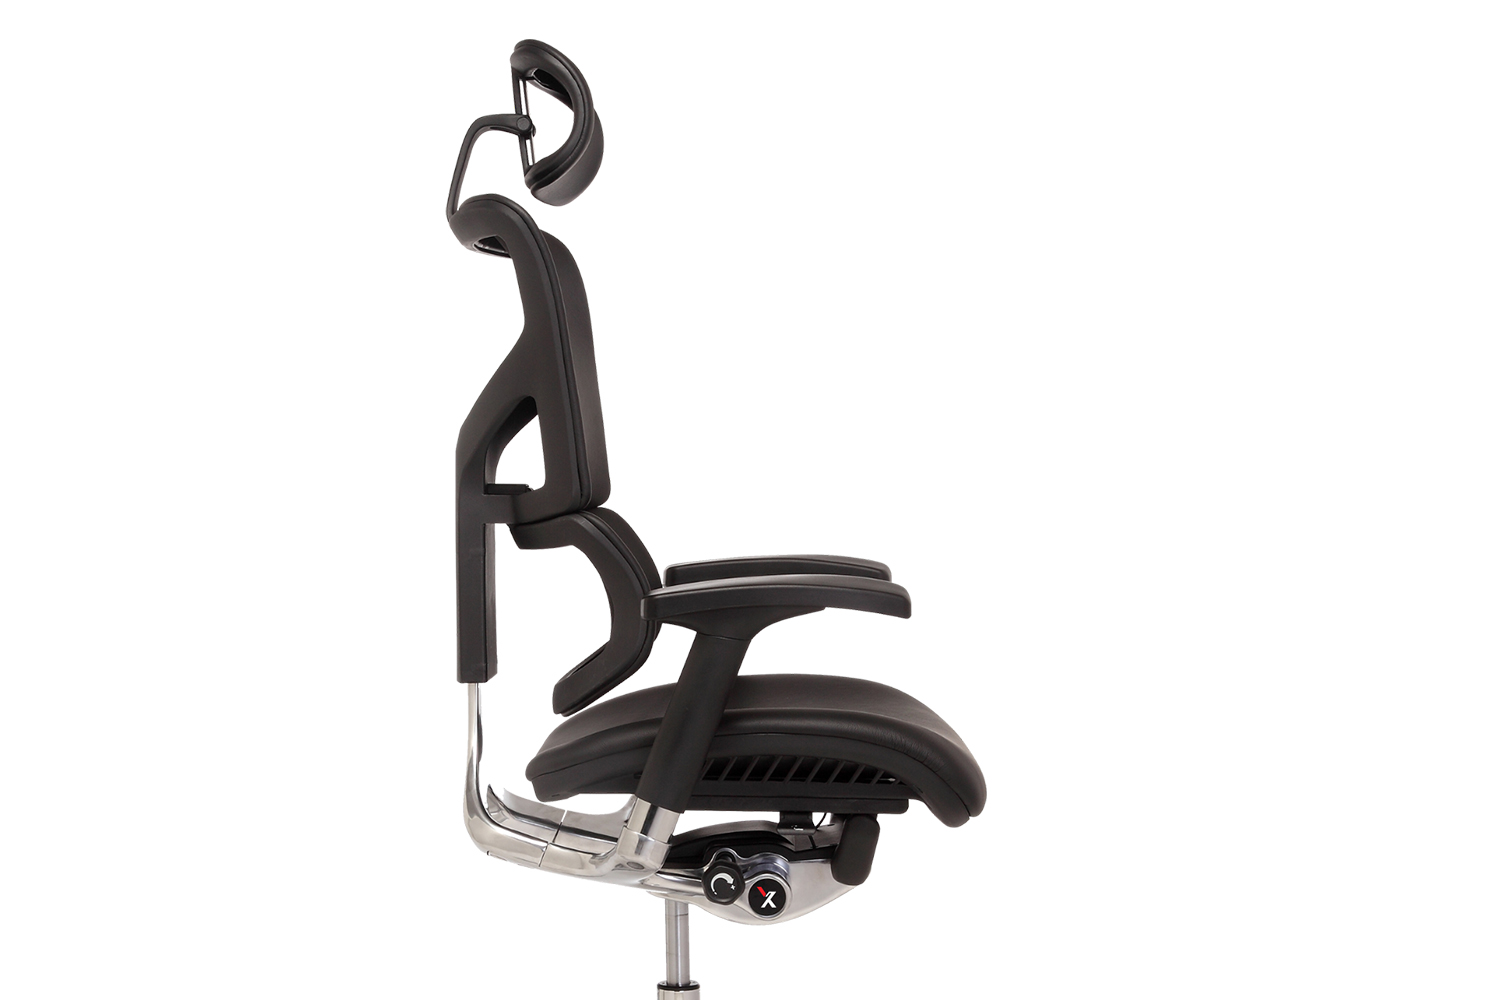 Office chair brand X-Chair launched a new product, the X3.